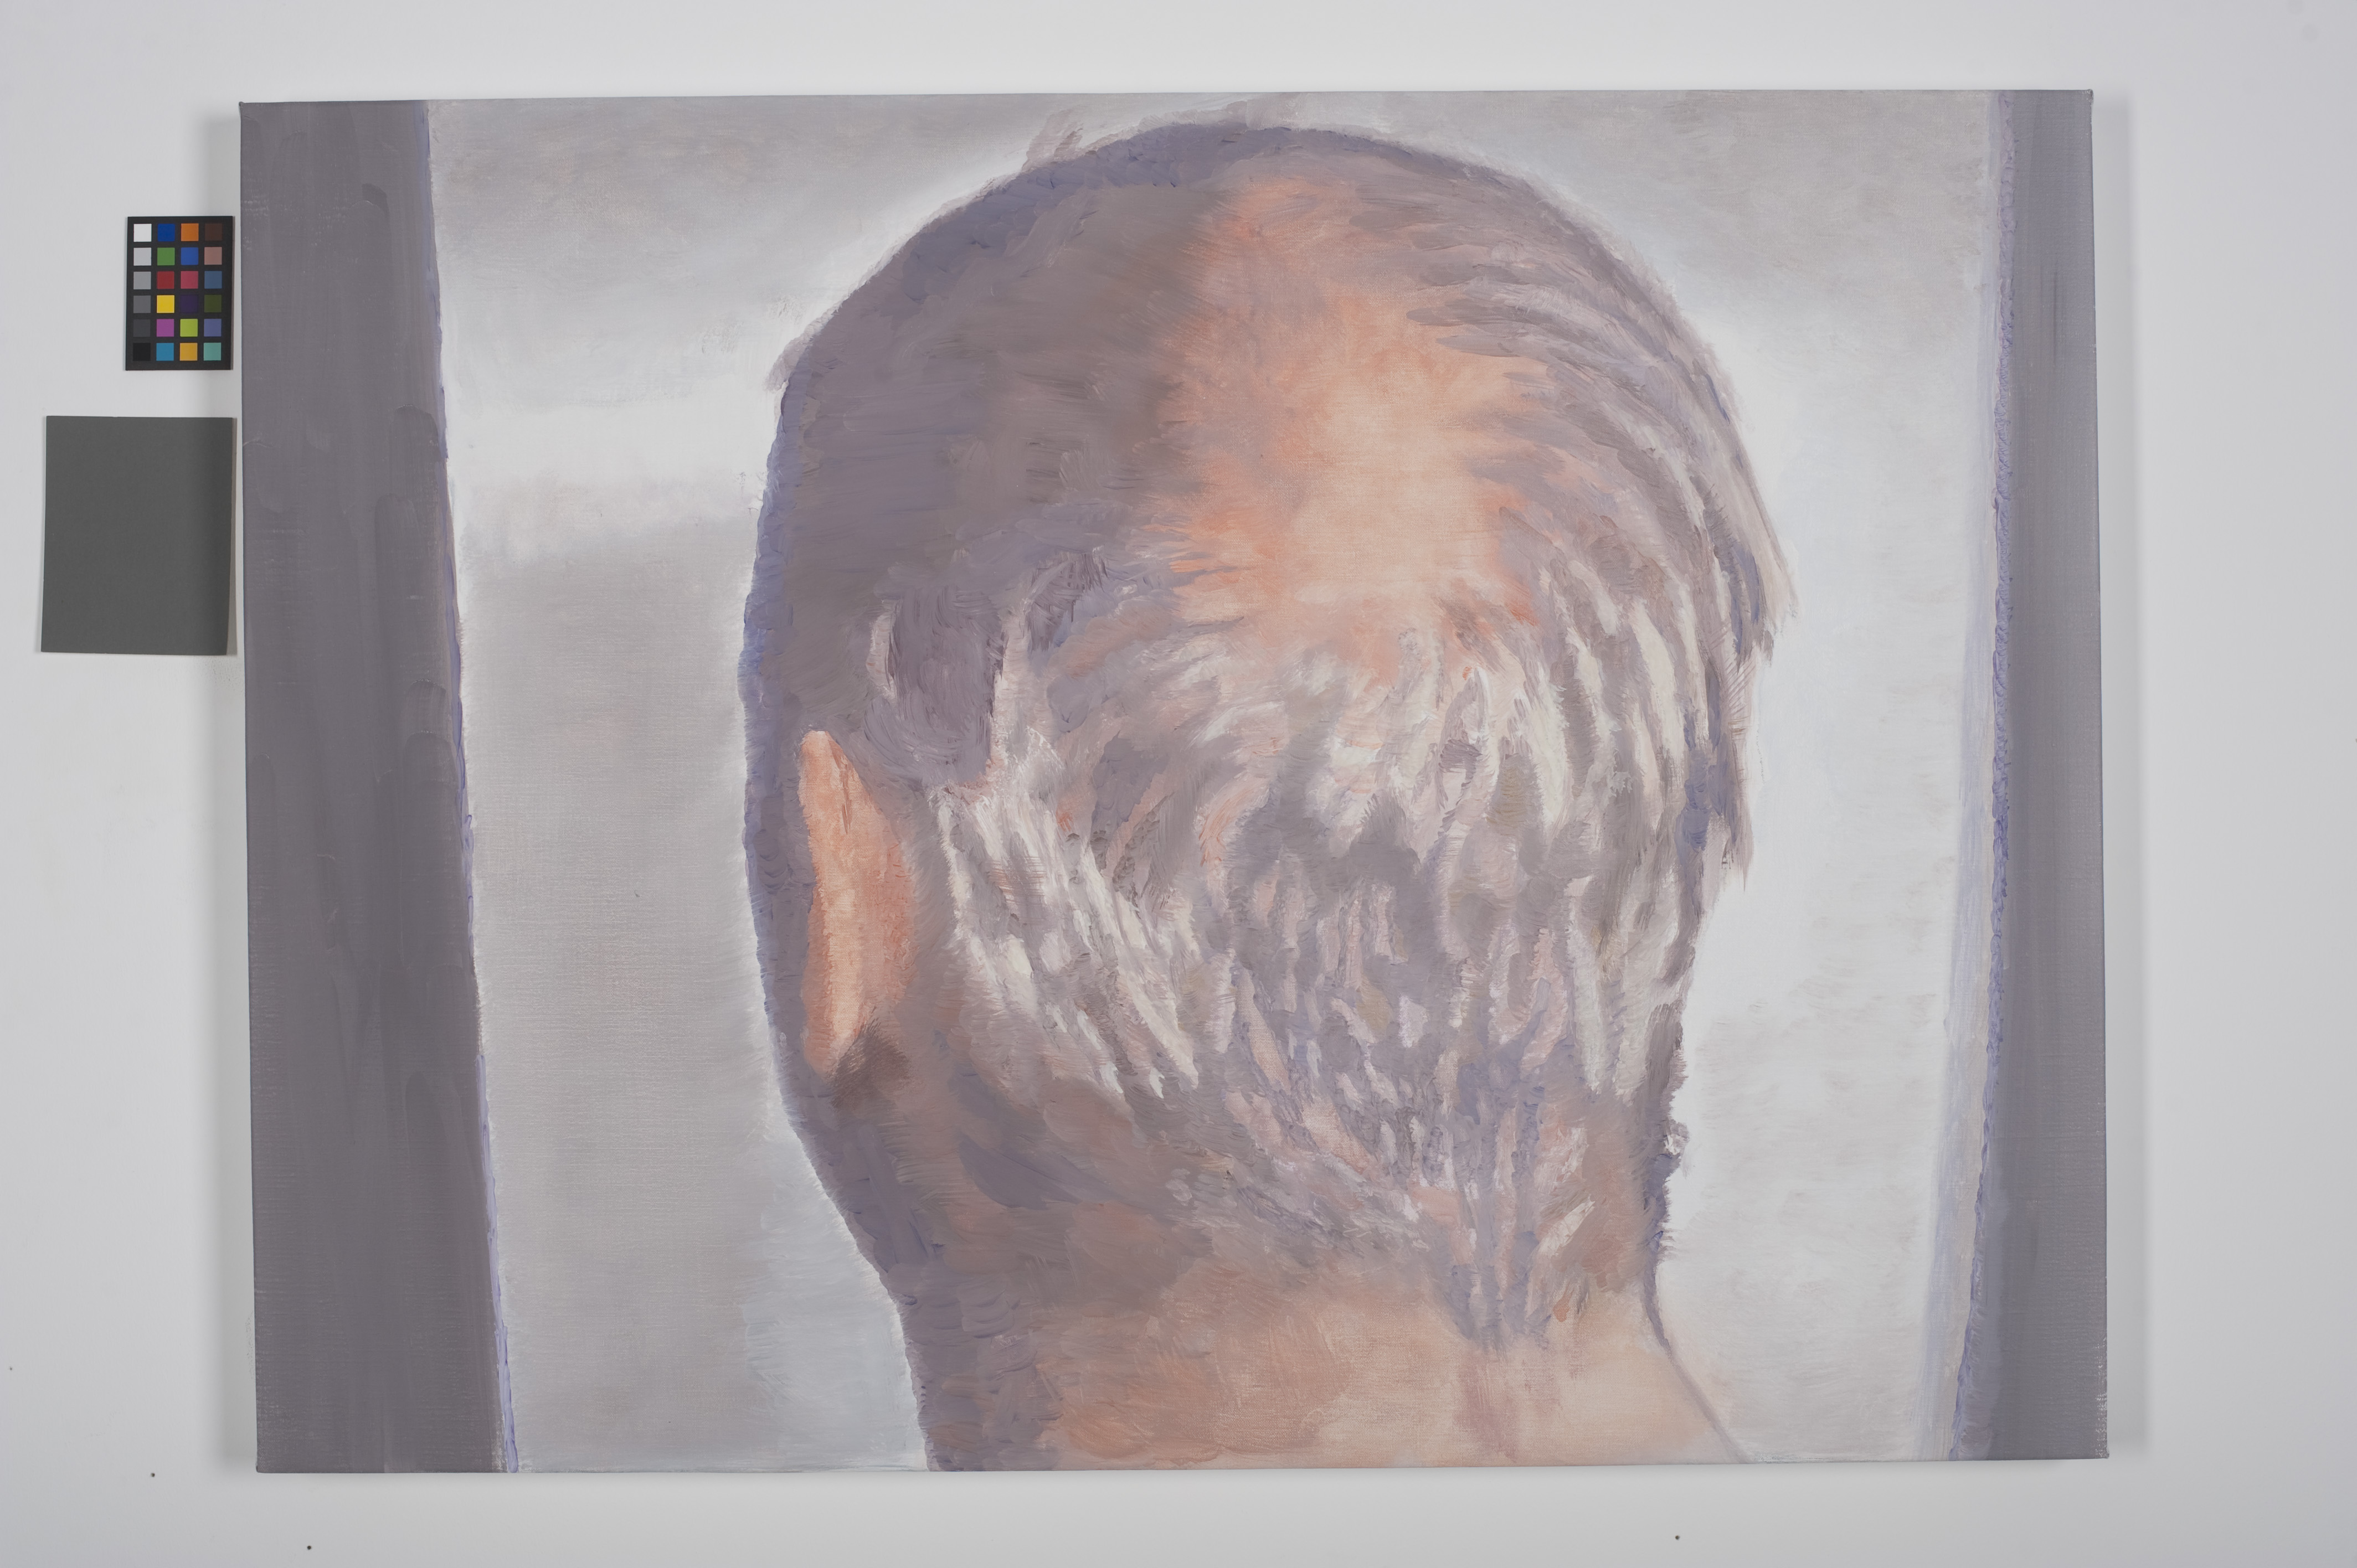 Neck, Luc Tuymans, Against the Day, Wiels